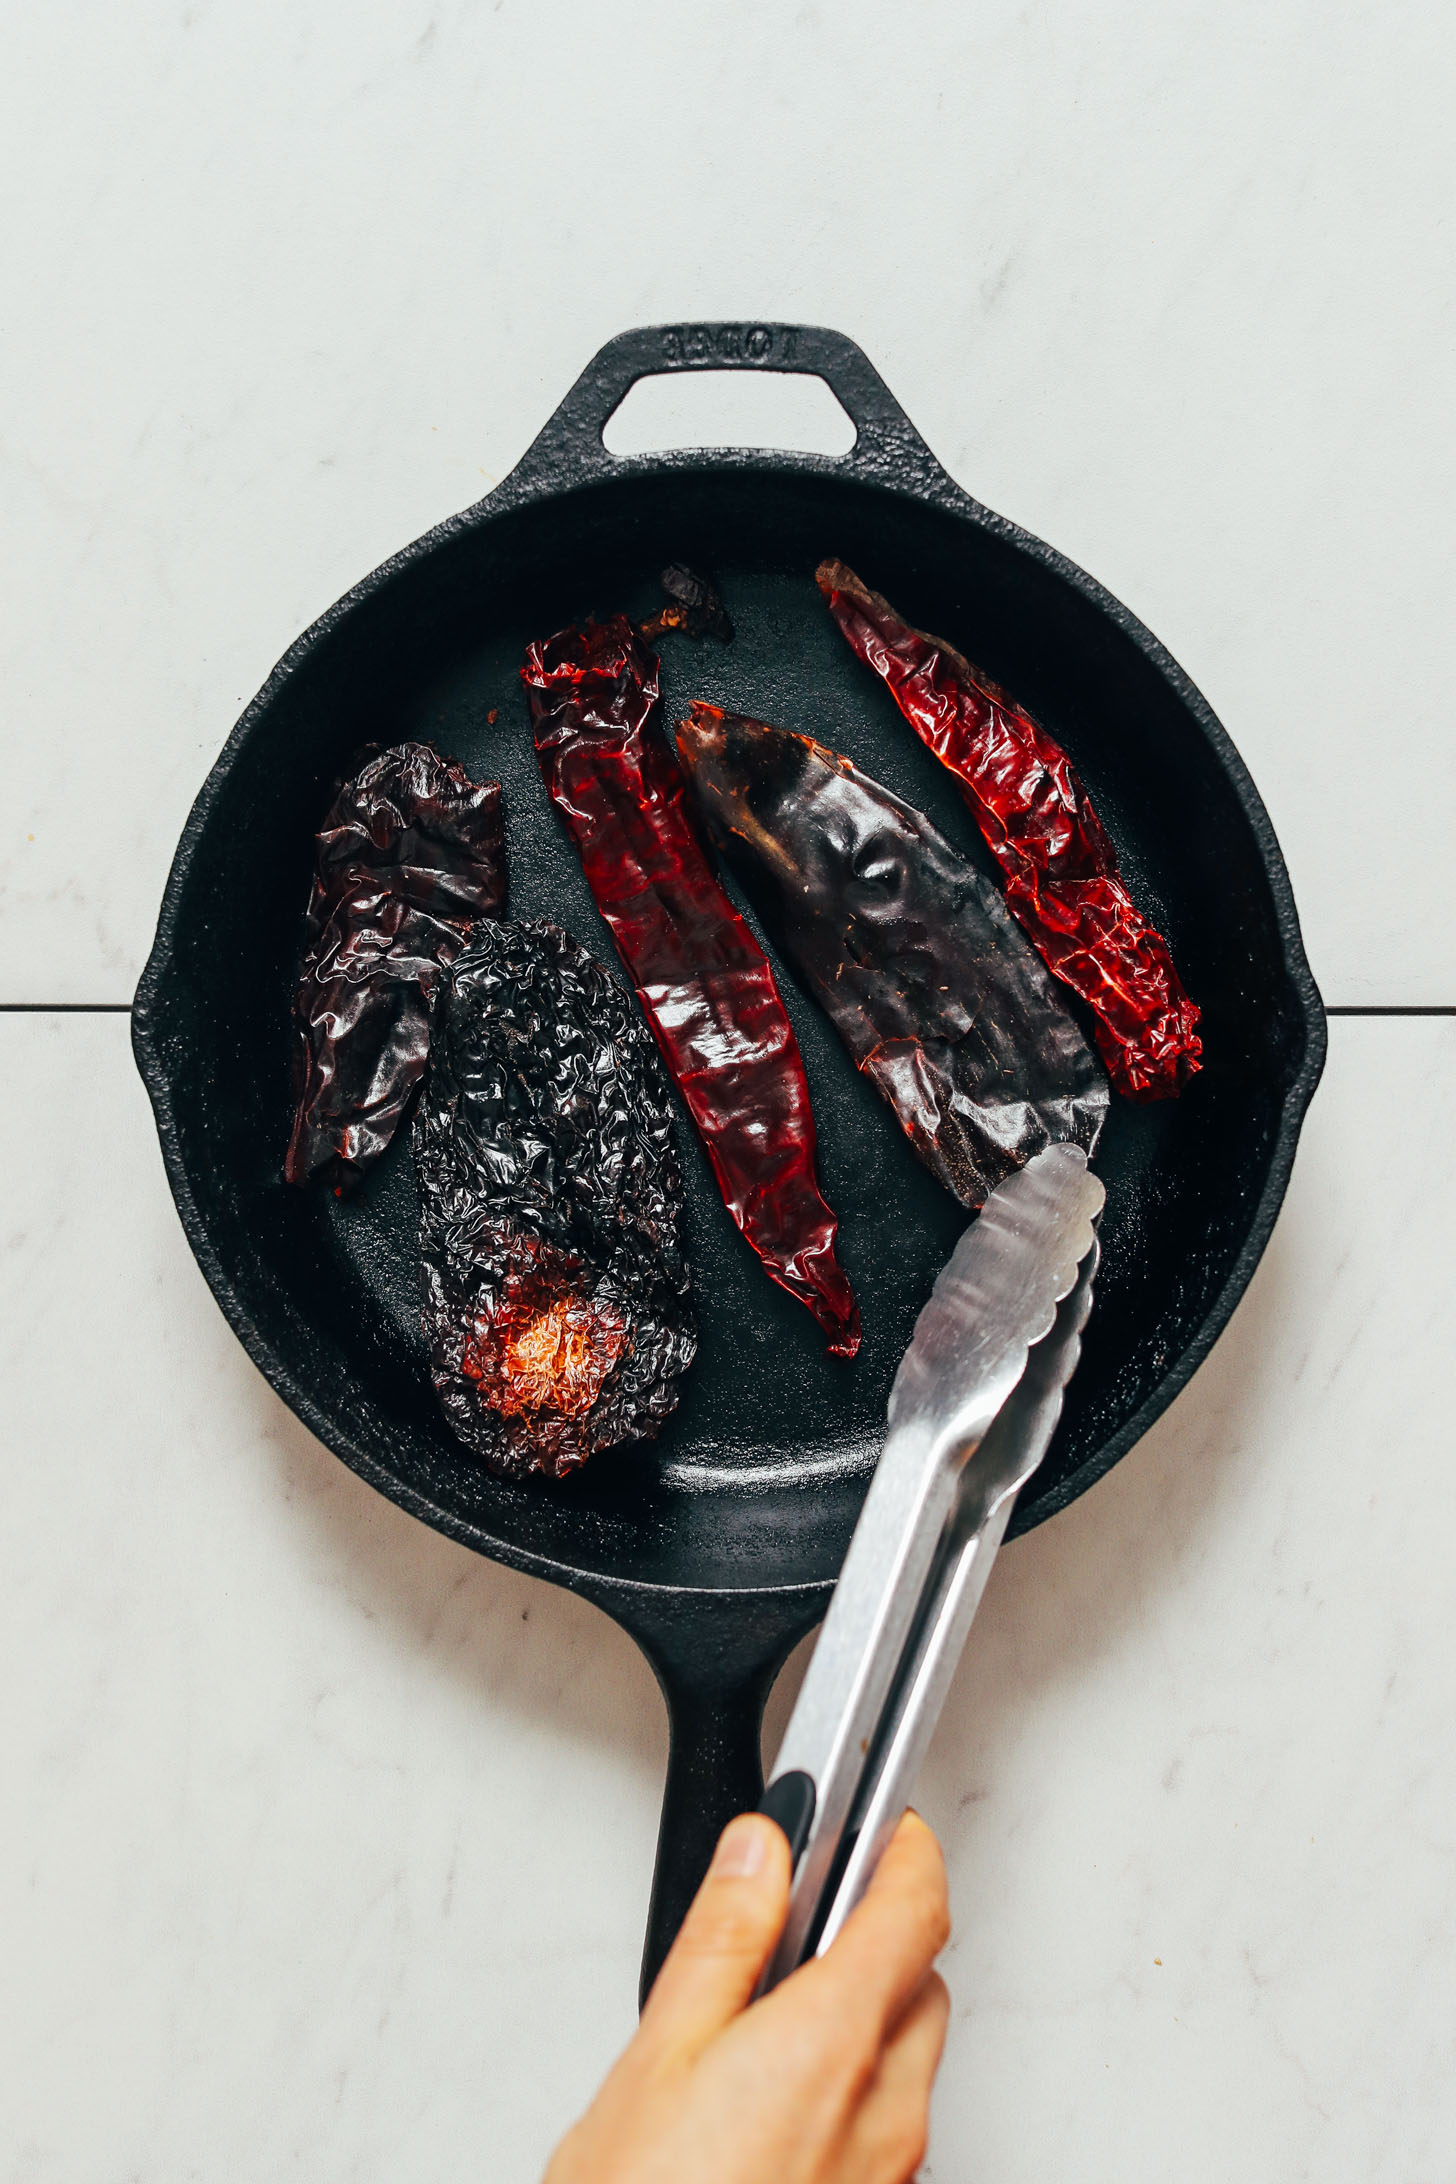 Toasting dried chilies in a cast iron skillet